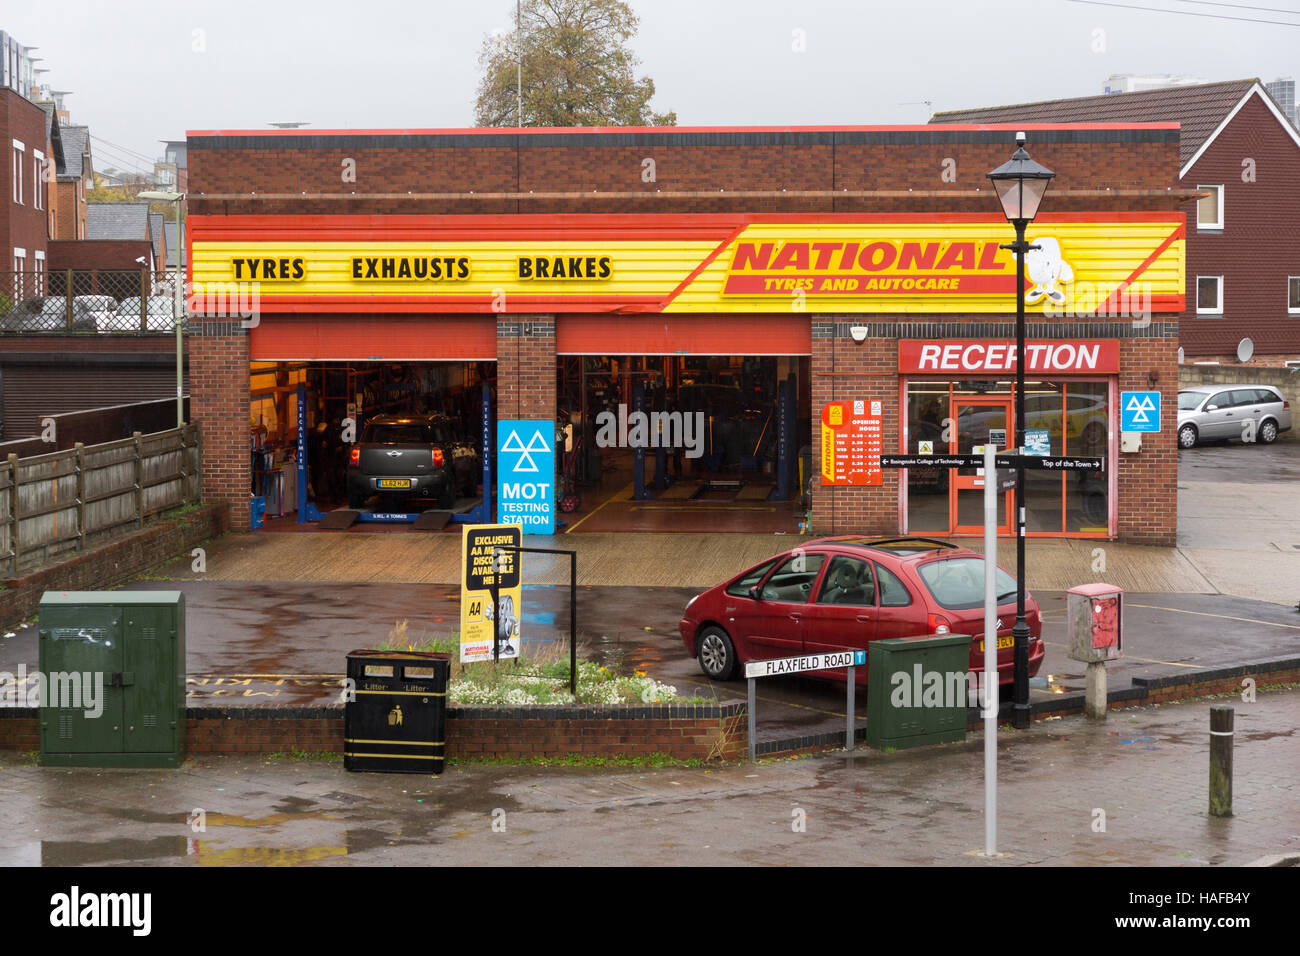 tyres garage stock  tyres garage stock images alamy